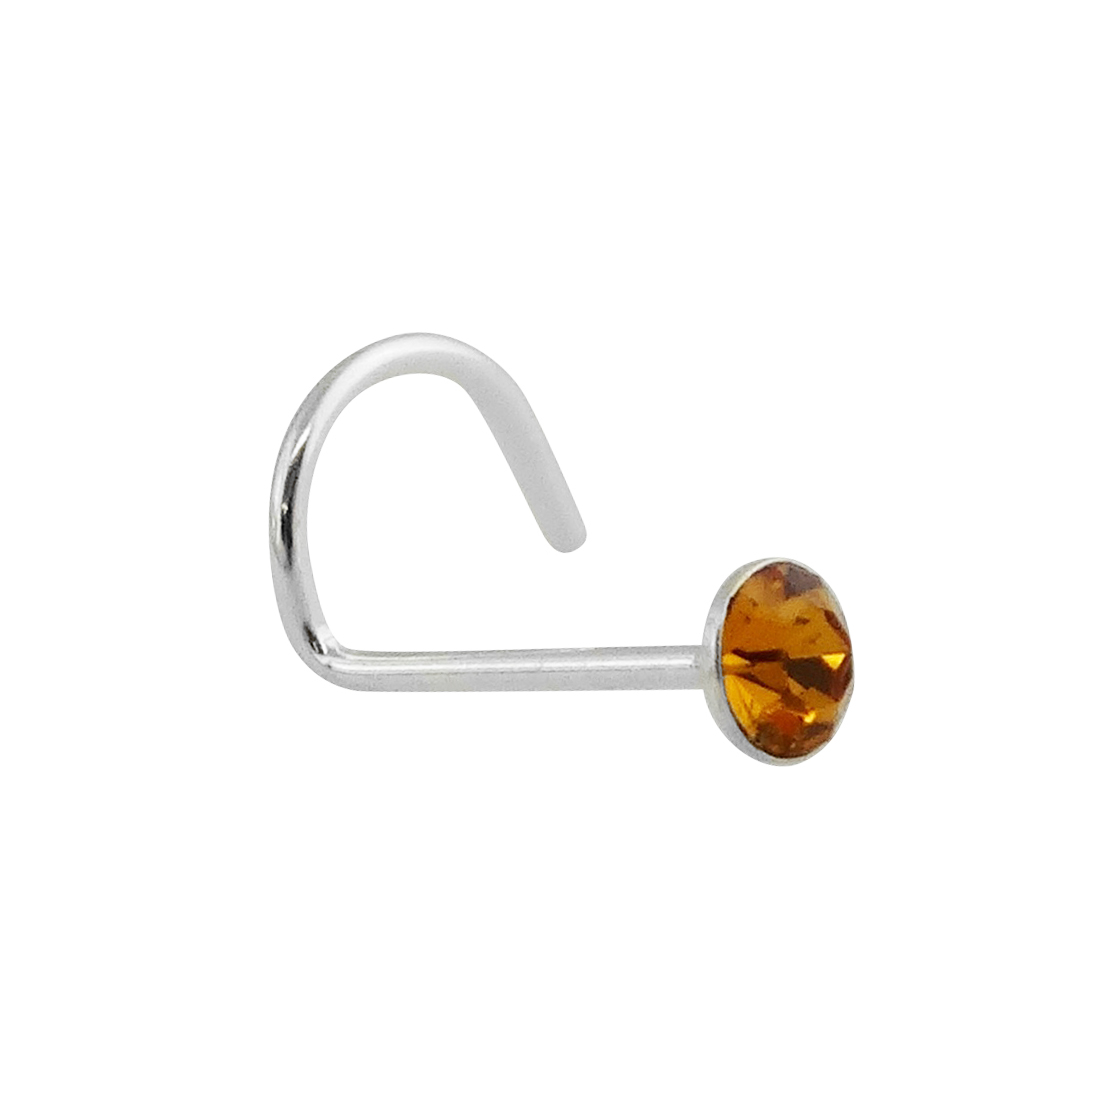 Orange Round CZ Nose Stud with Nostril Screw - 925 Sterling Silver - November